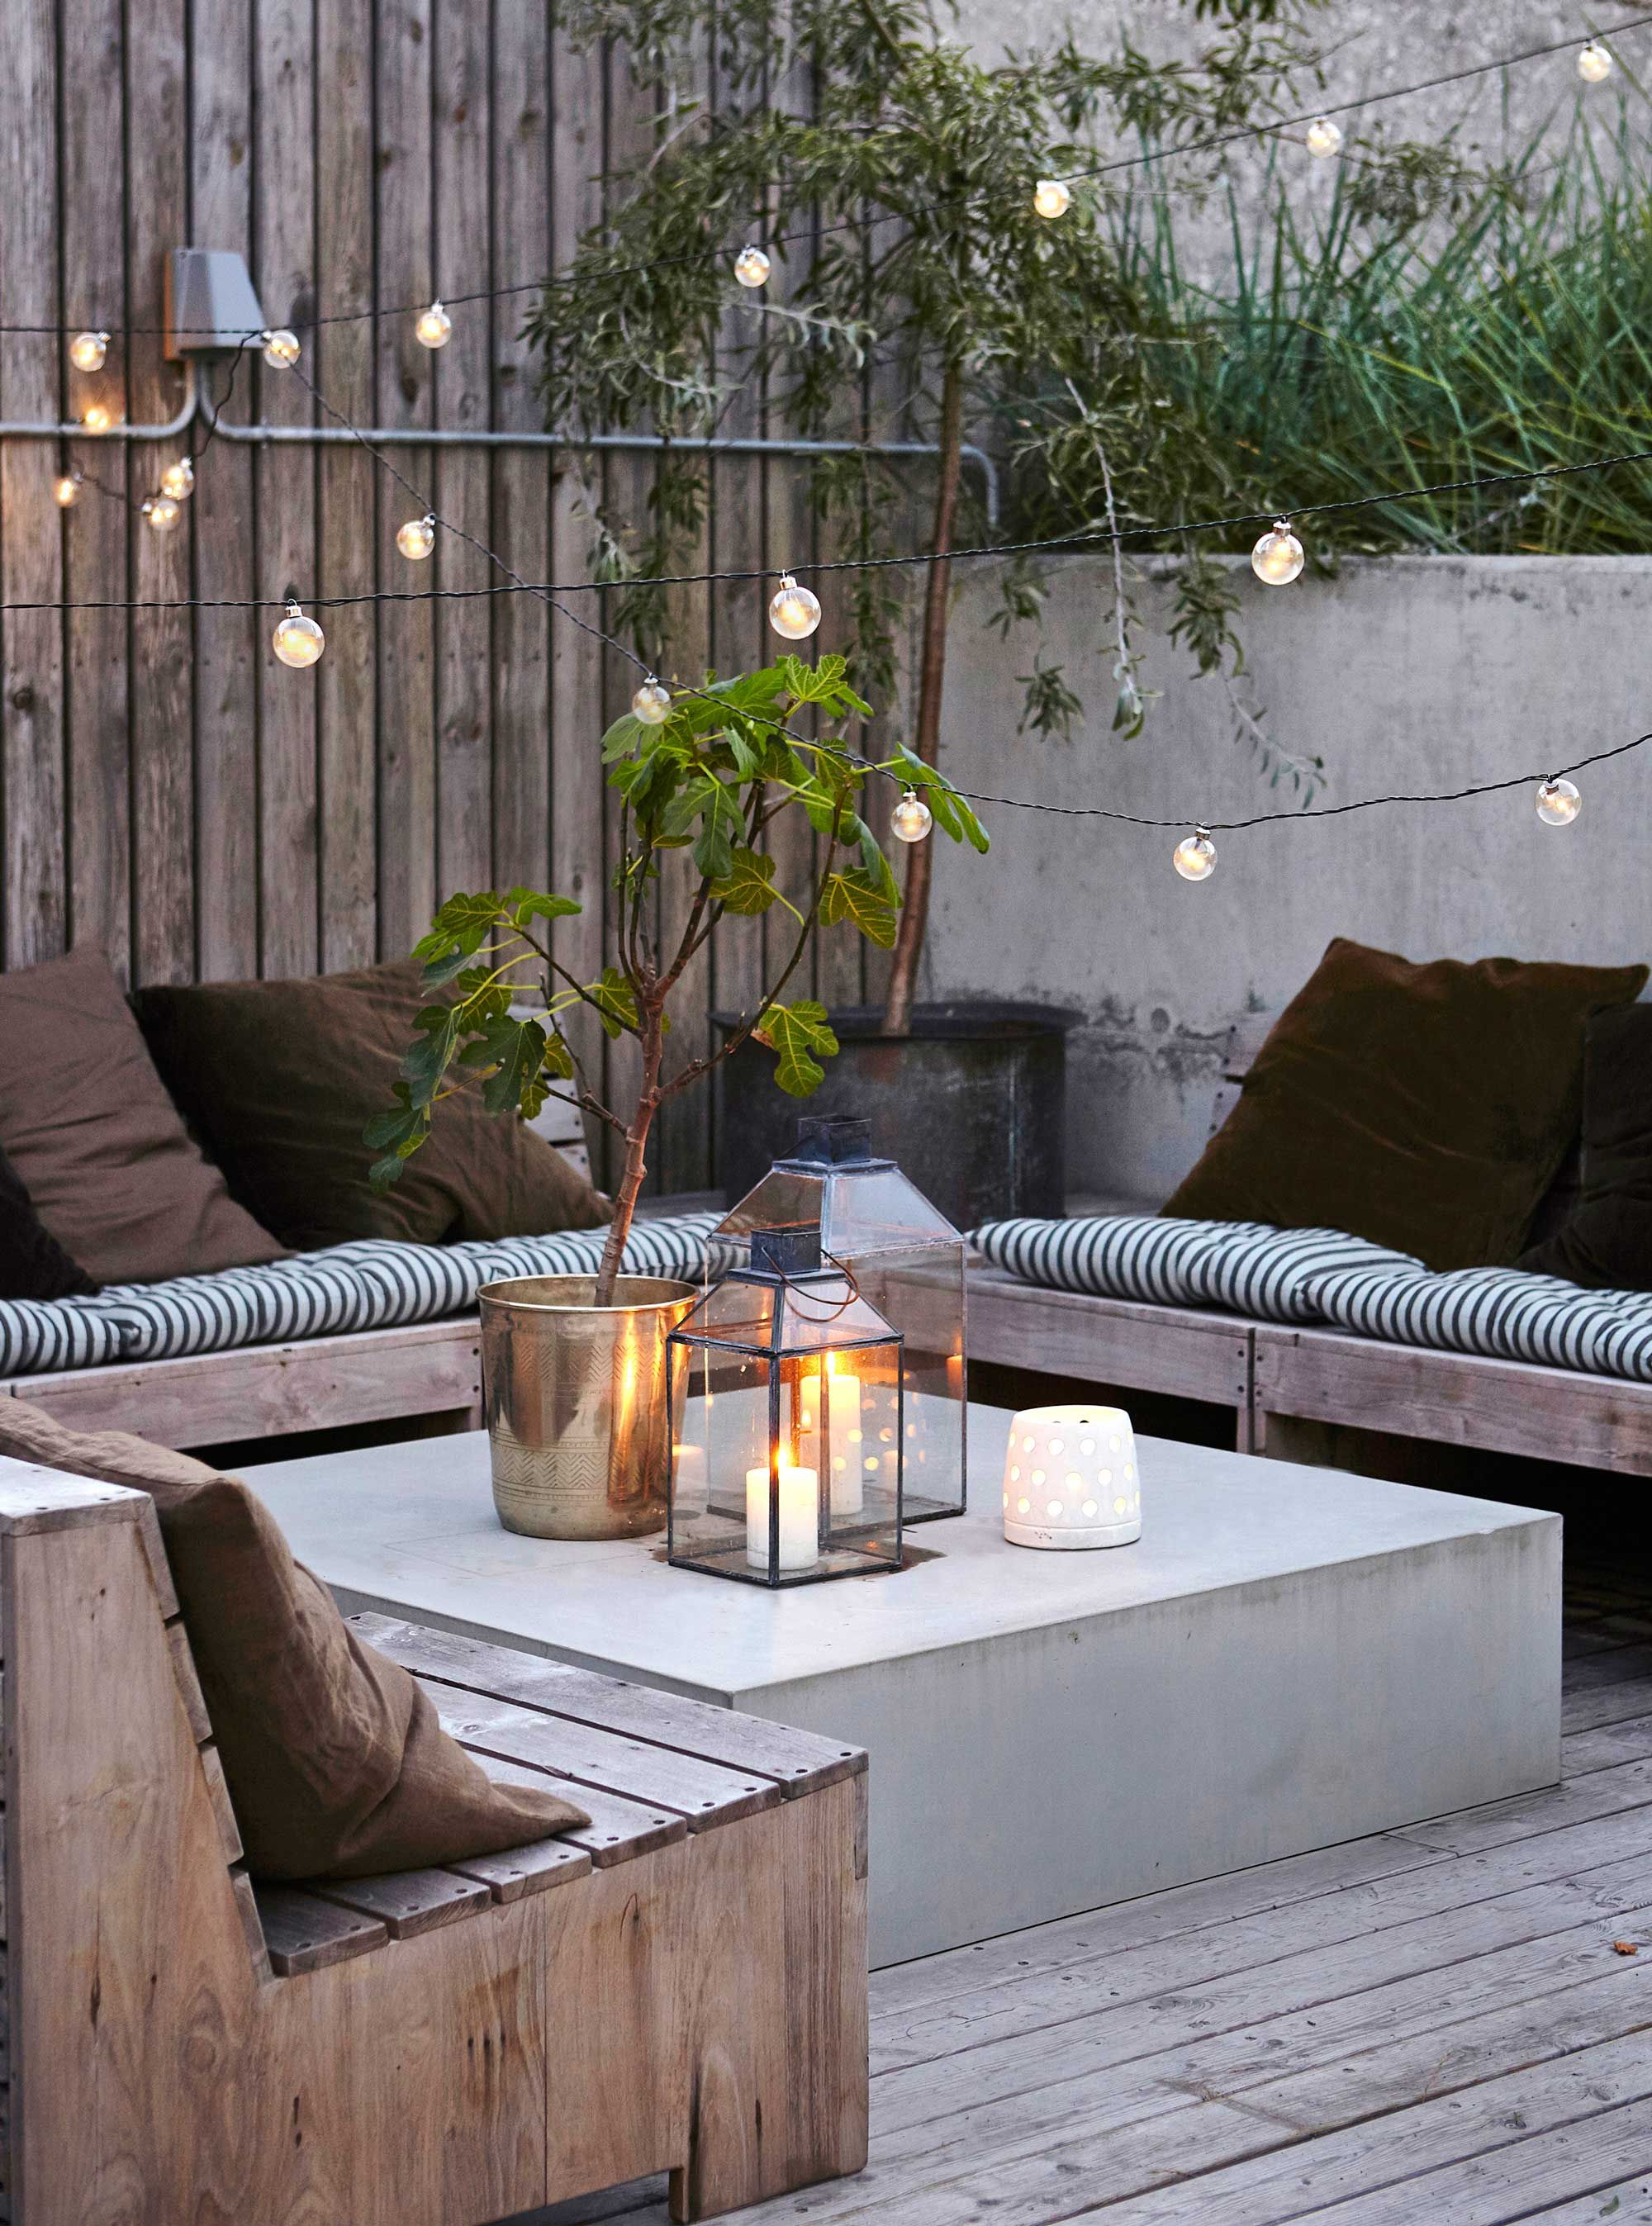 garten lounge ecke stimmung lichter garden design. Black Bedroom Furniture Sets. Home Design Ideas